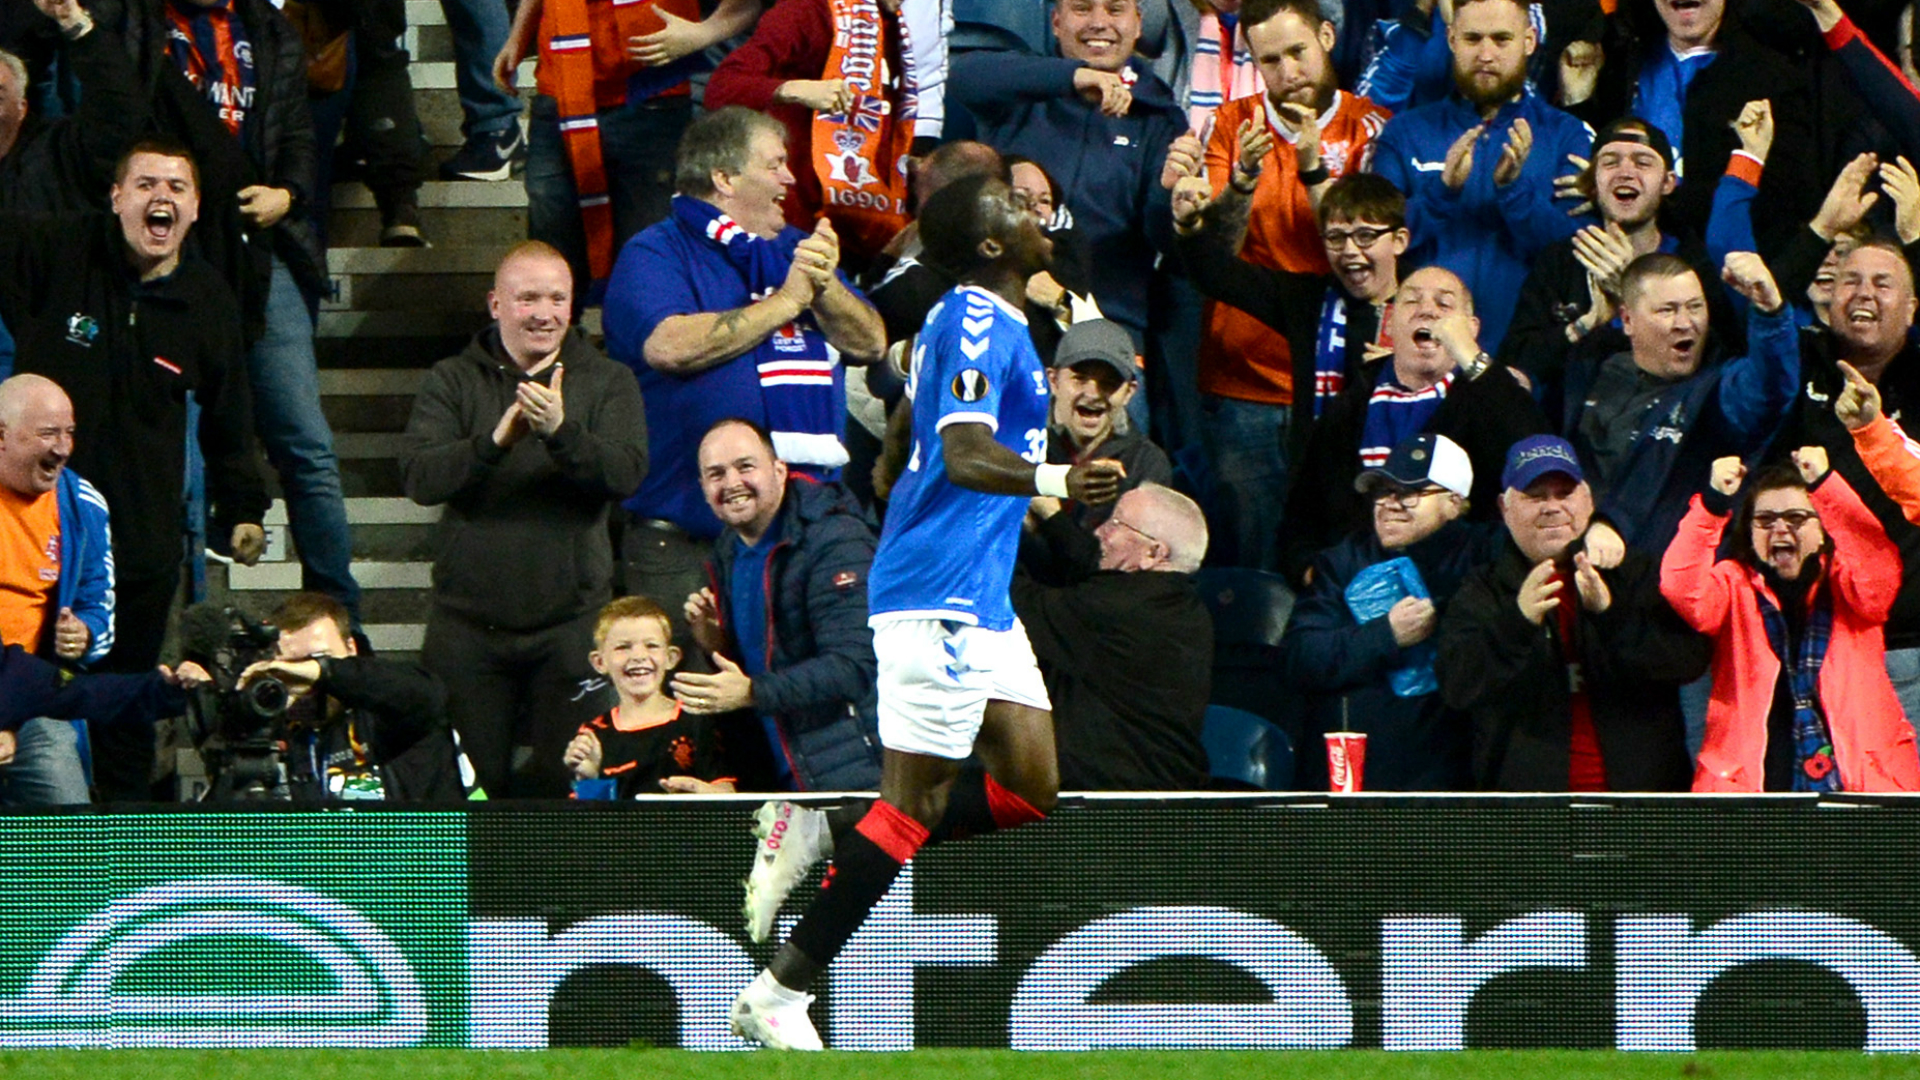 Rangers 1-0 Feyenoord: Ojo's super strike seals fitting tribute to Ricksen